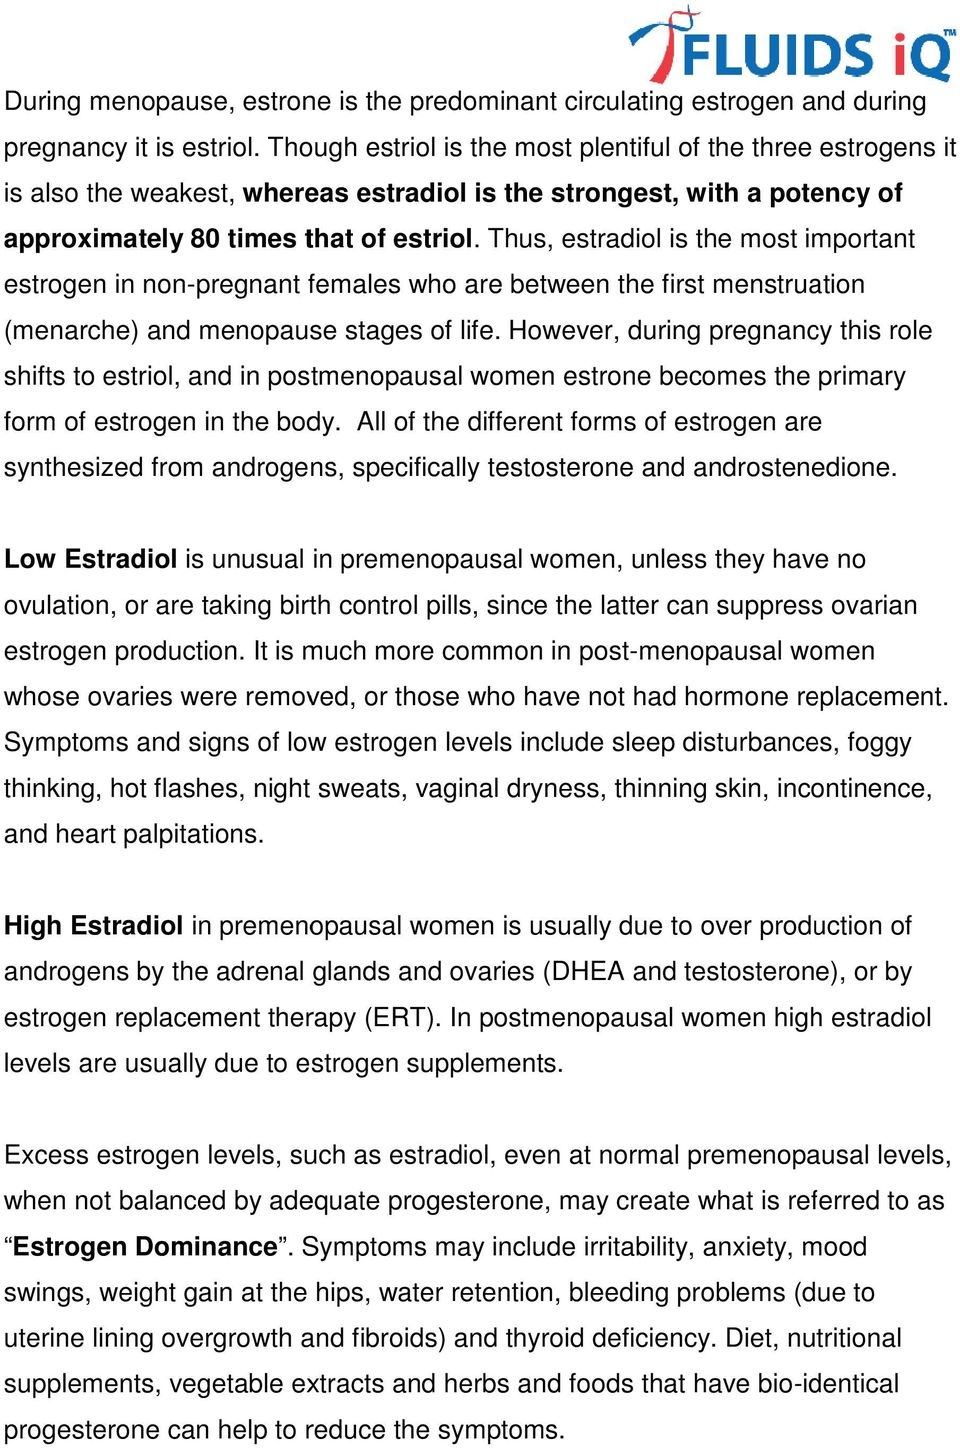 . Thus, estradiol is the most important estrogen in non-pregnant females who are between the first menstruation (menarche) and menopause stages of life.